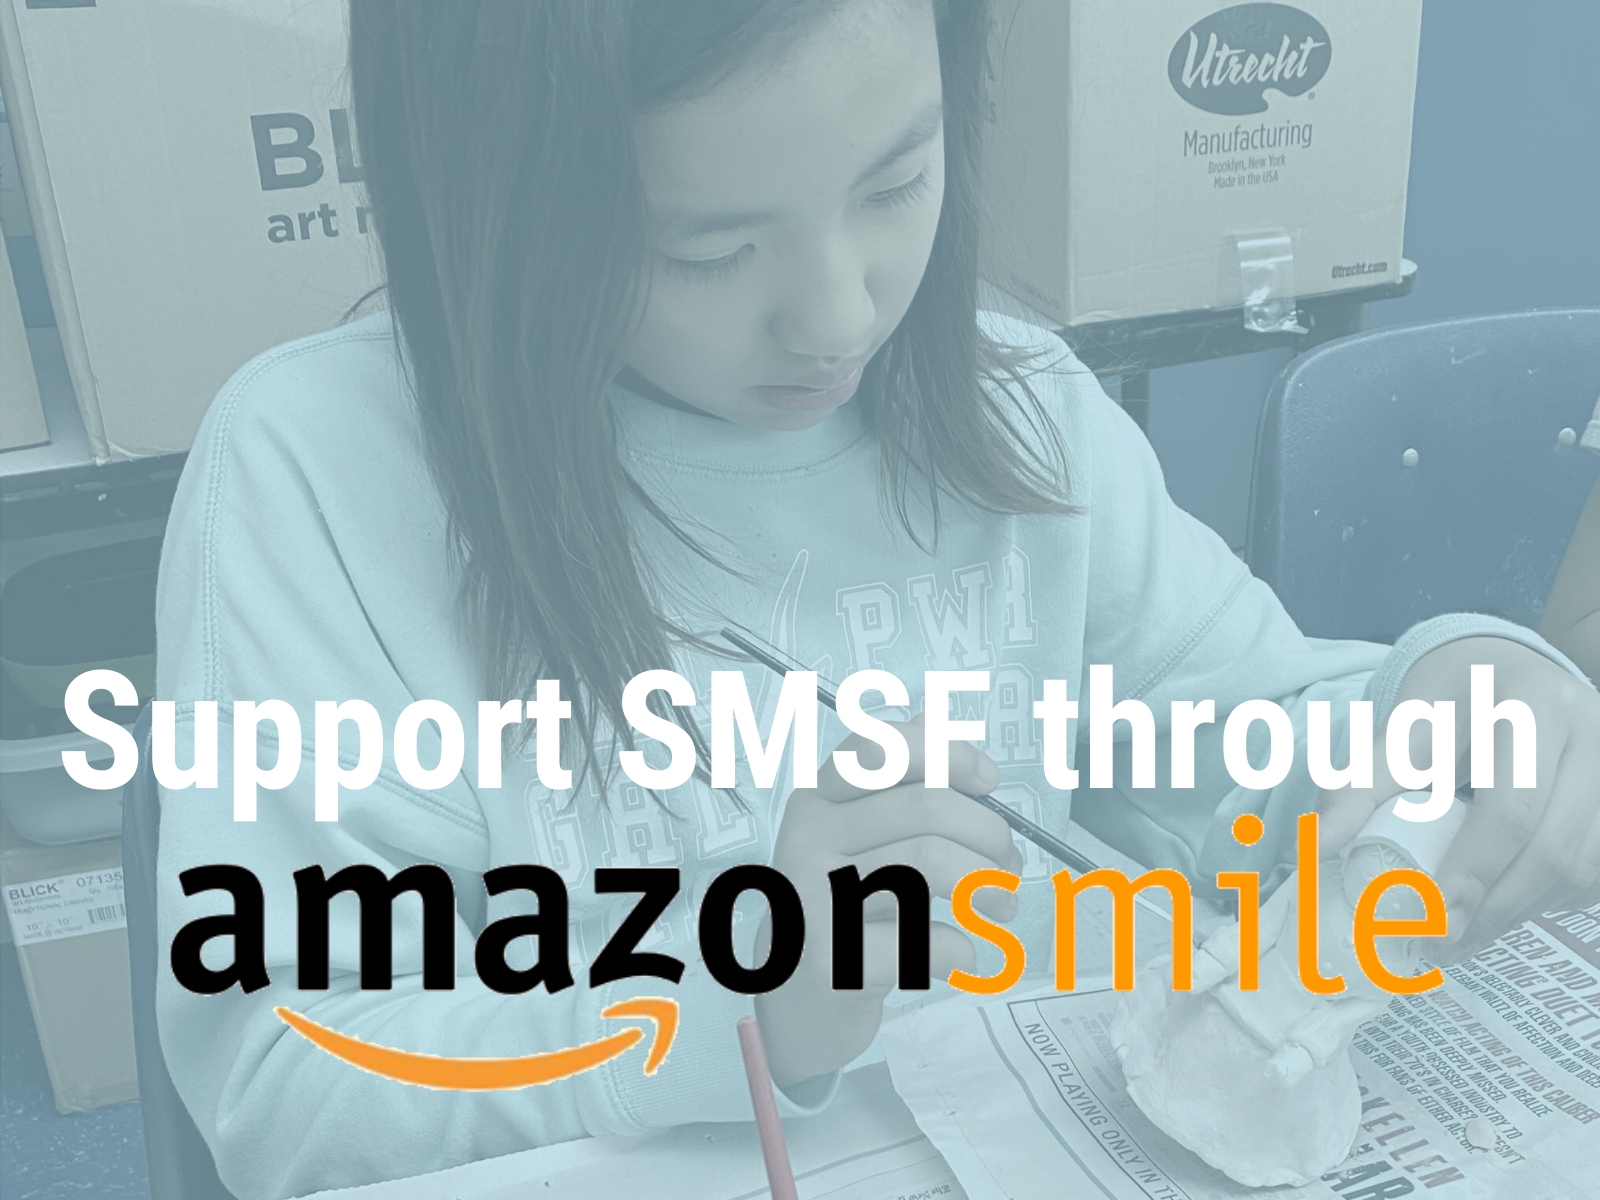 You Can Support SMSF While Shopping!